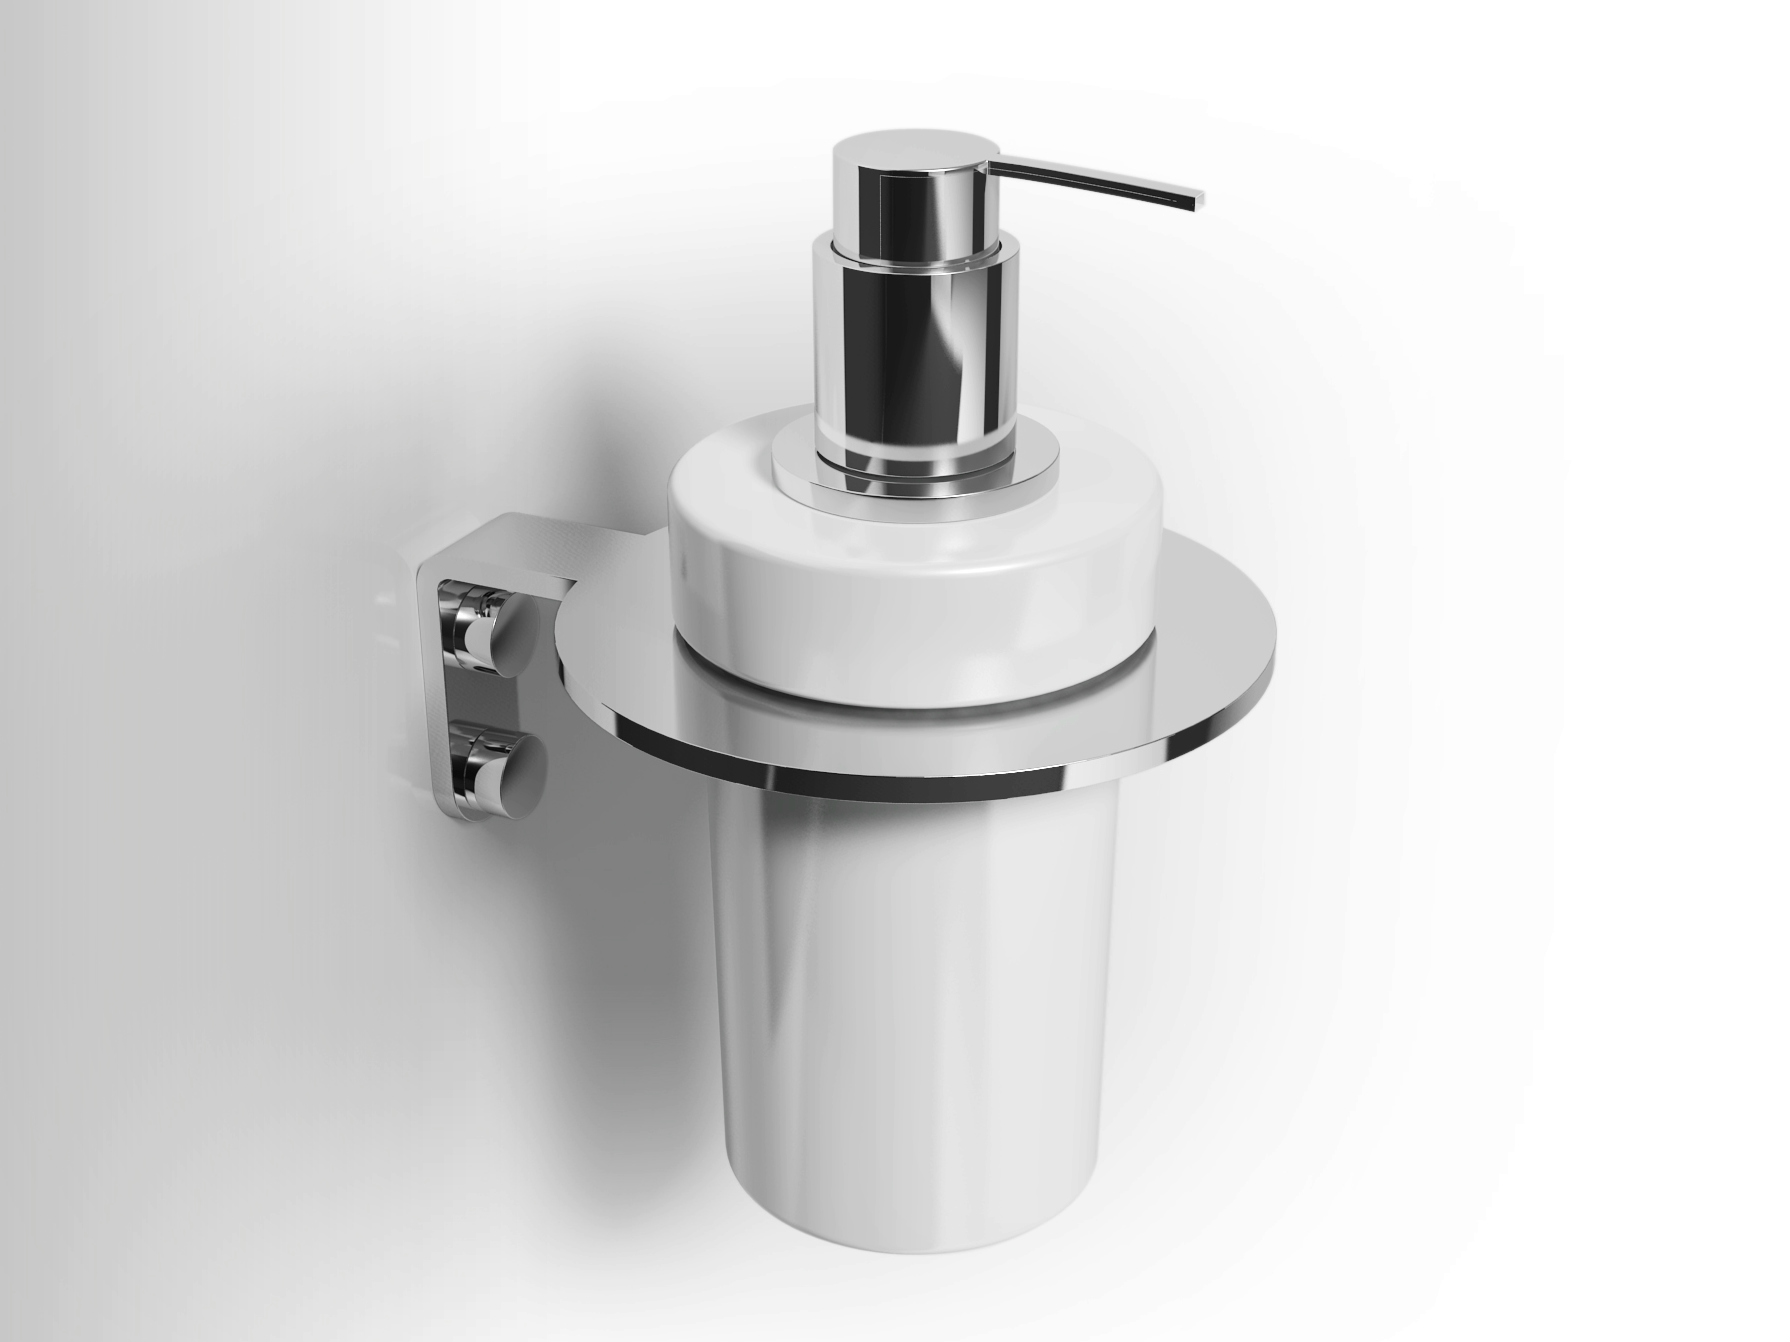 Ceramic Liquid soap dispensers